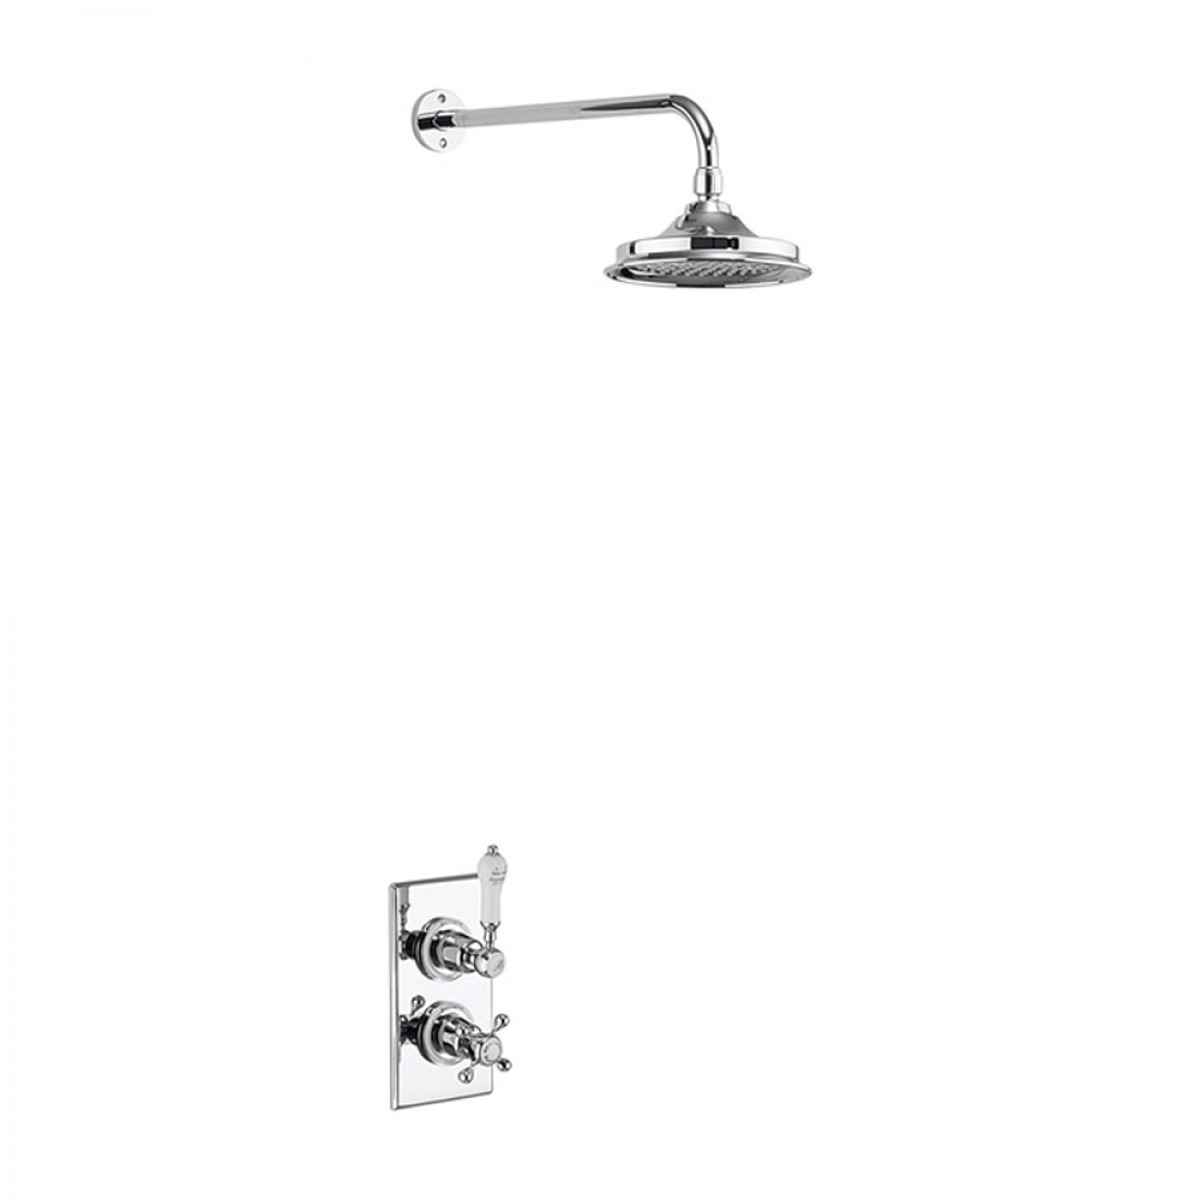 BURLINGTON TRENT CONCEALED THERMOSTATIC SHOWER KIT WITH FIXED AIRBURST SHOWER HEAD